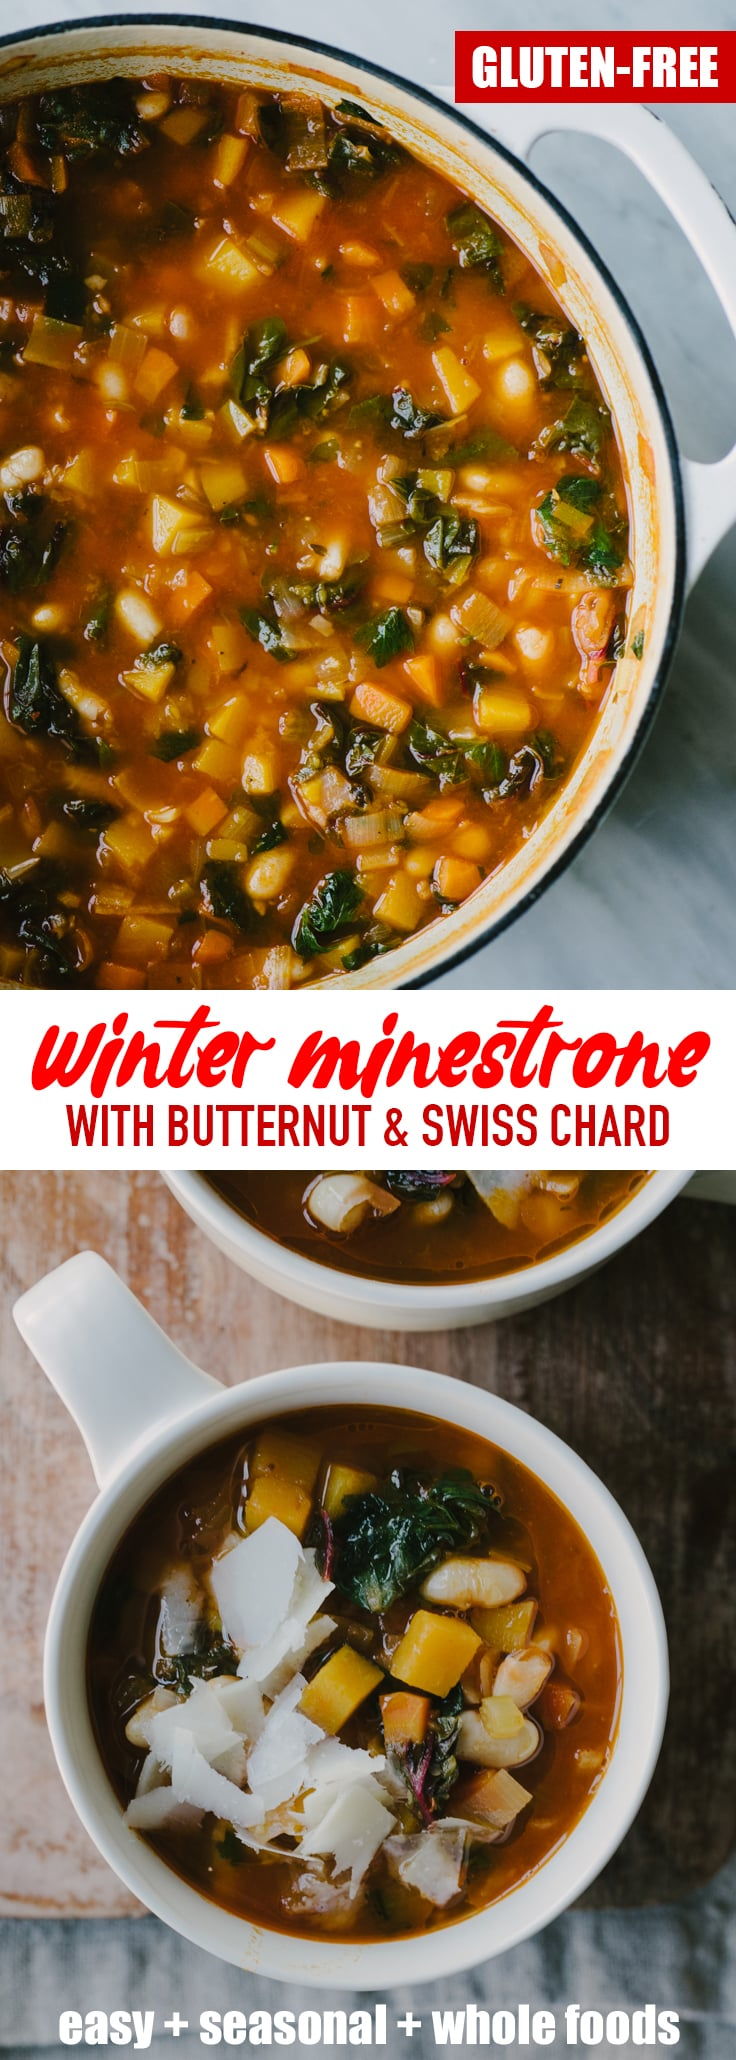 This gluten free winter minestrone soup recipe is packed with healthy, nutritious vegetables but is still rich and indulgent. It's perfect for chilly winter nights! #minestrone #soup #realfood #wholefoods #winter #recipe